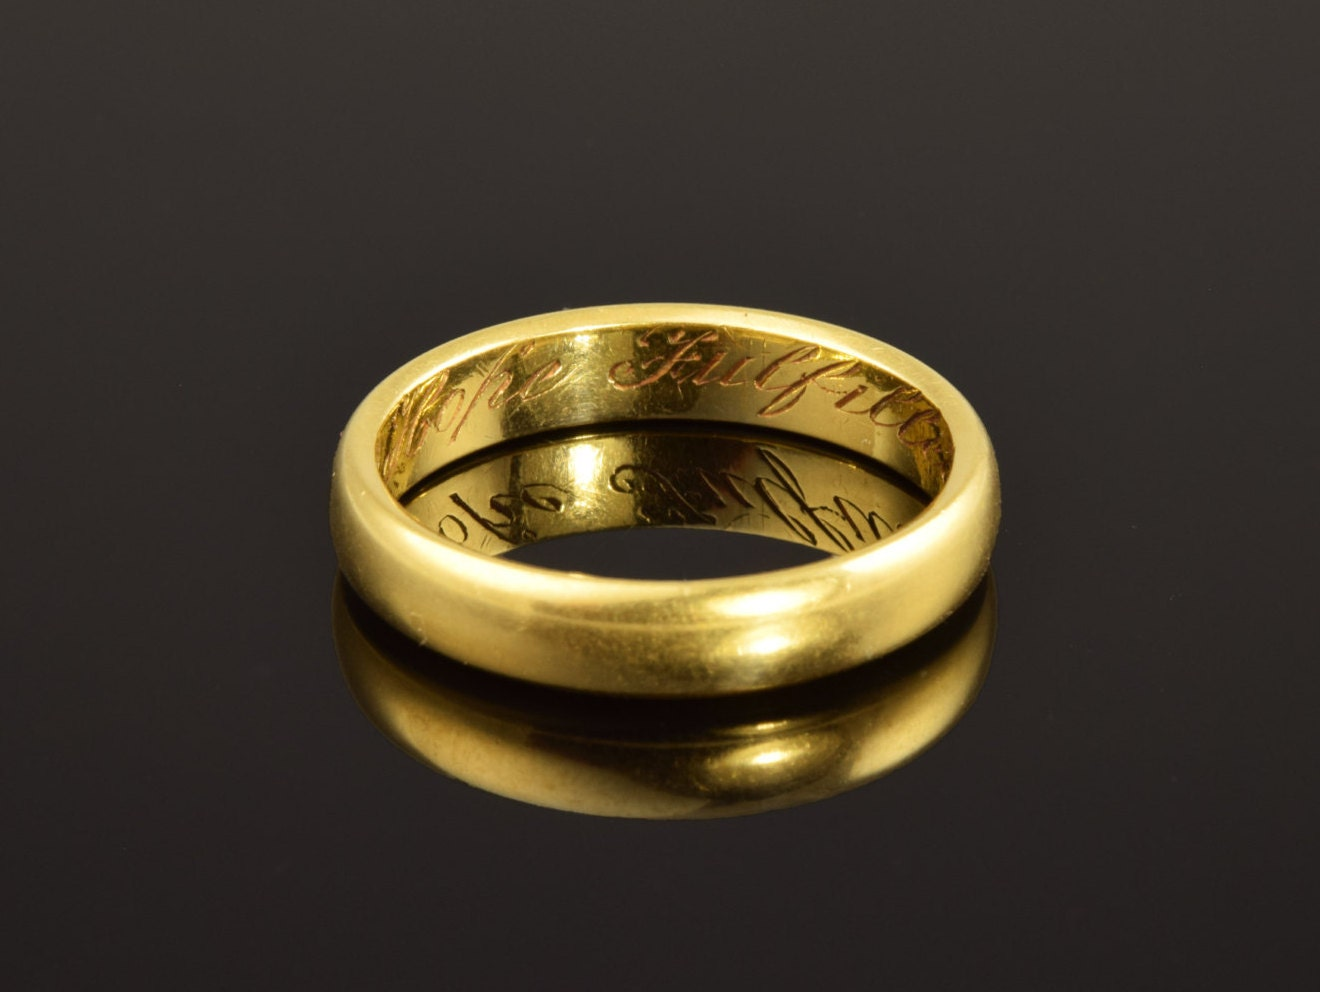 antique posy ring inscribed a fulfilled 18th march